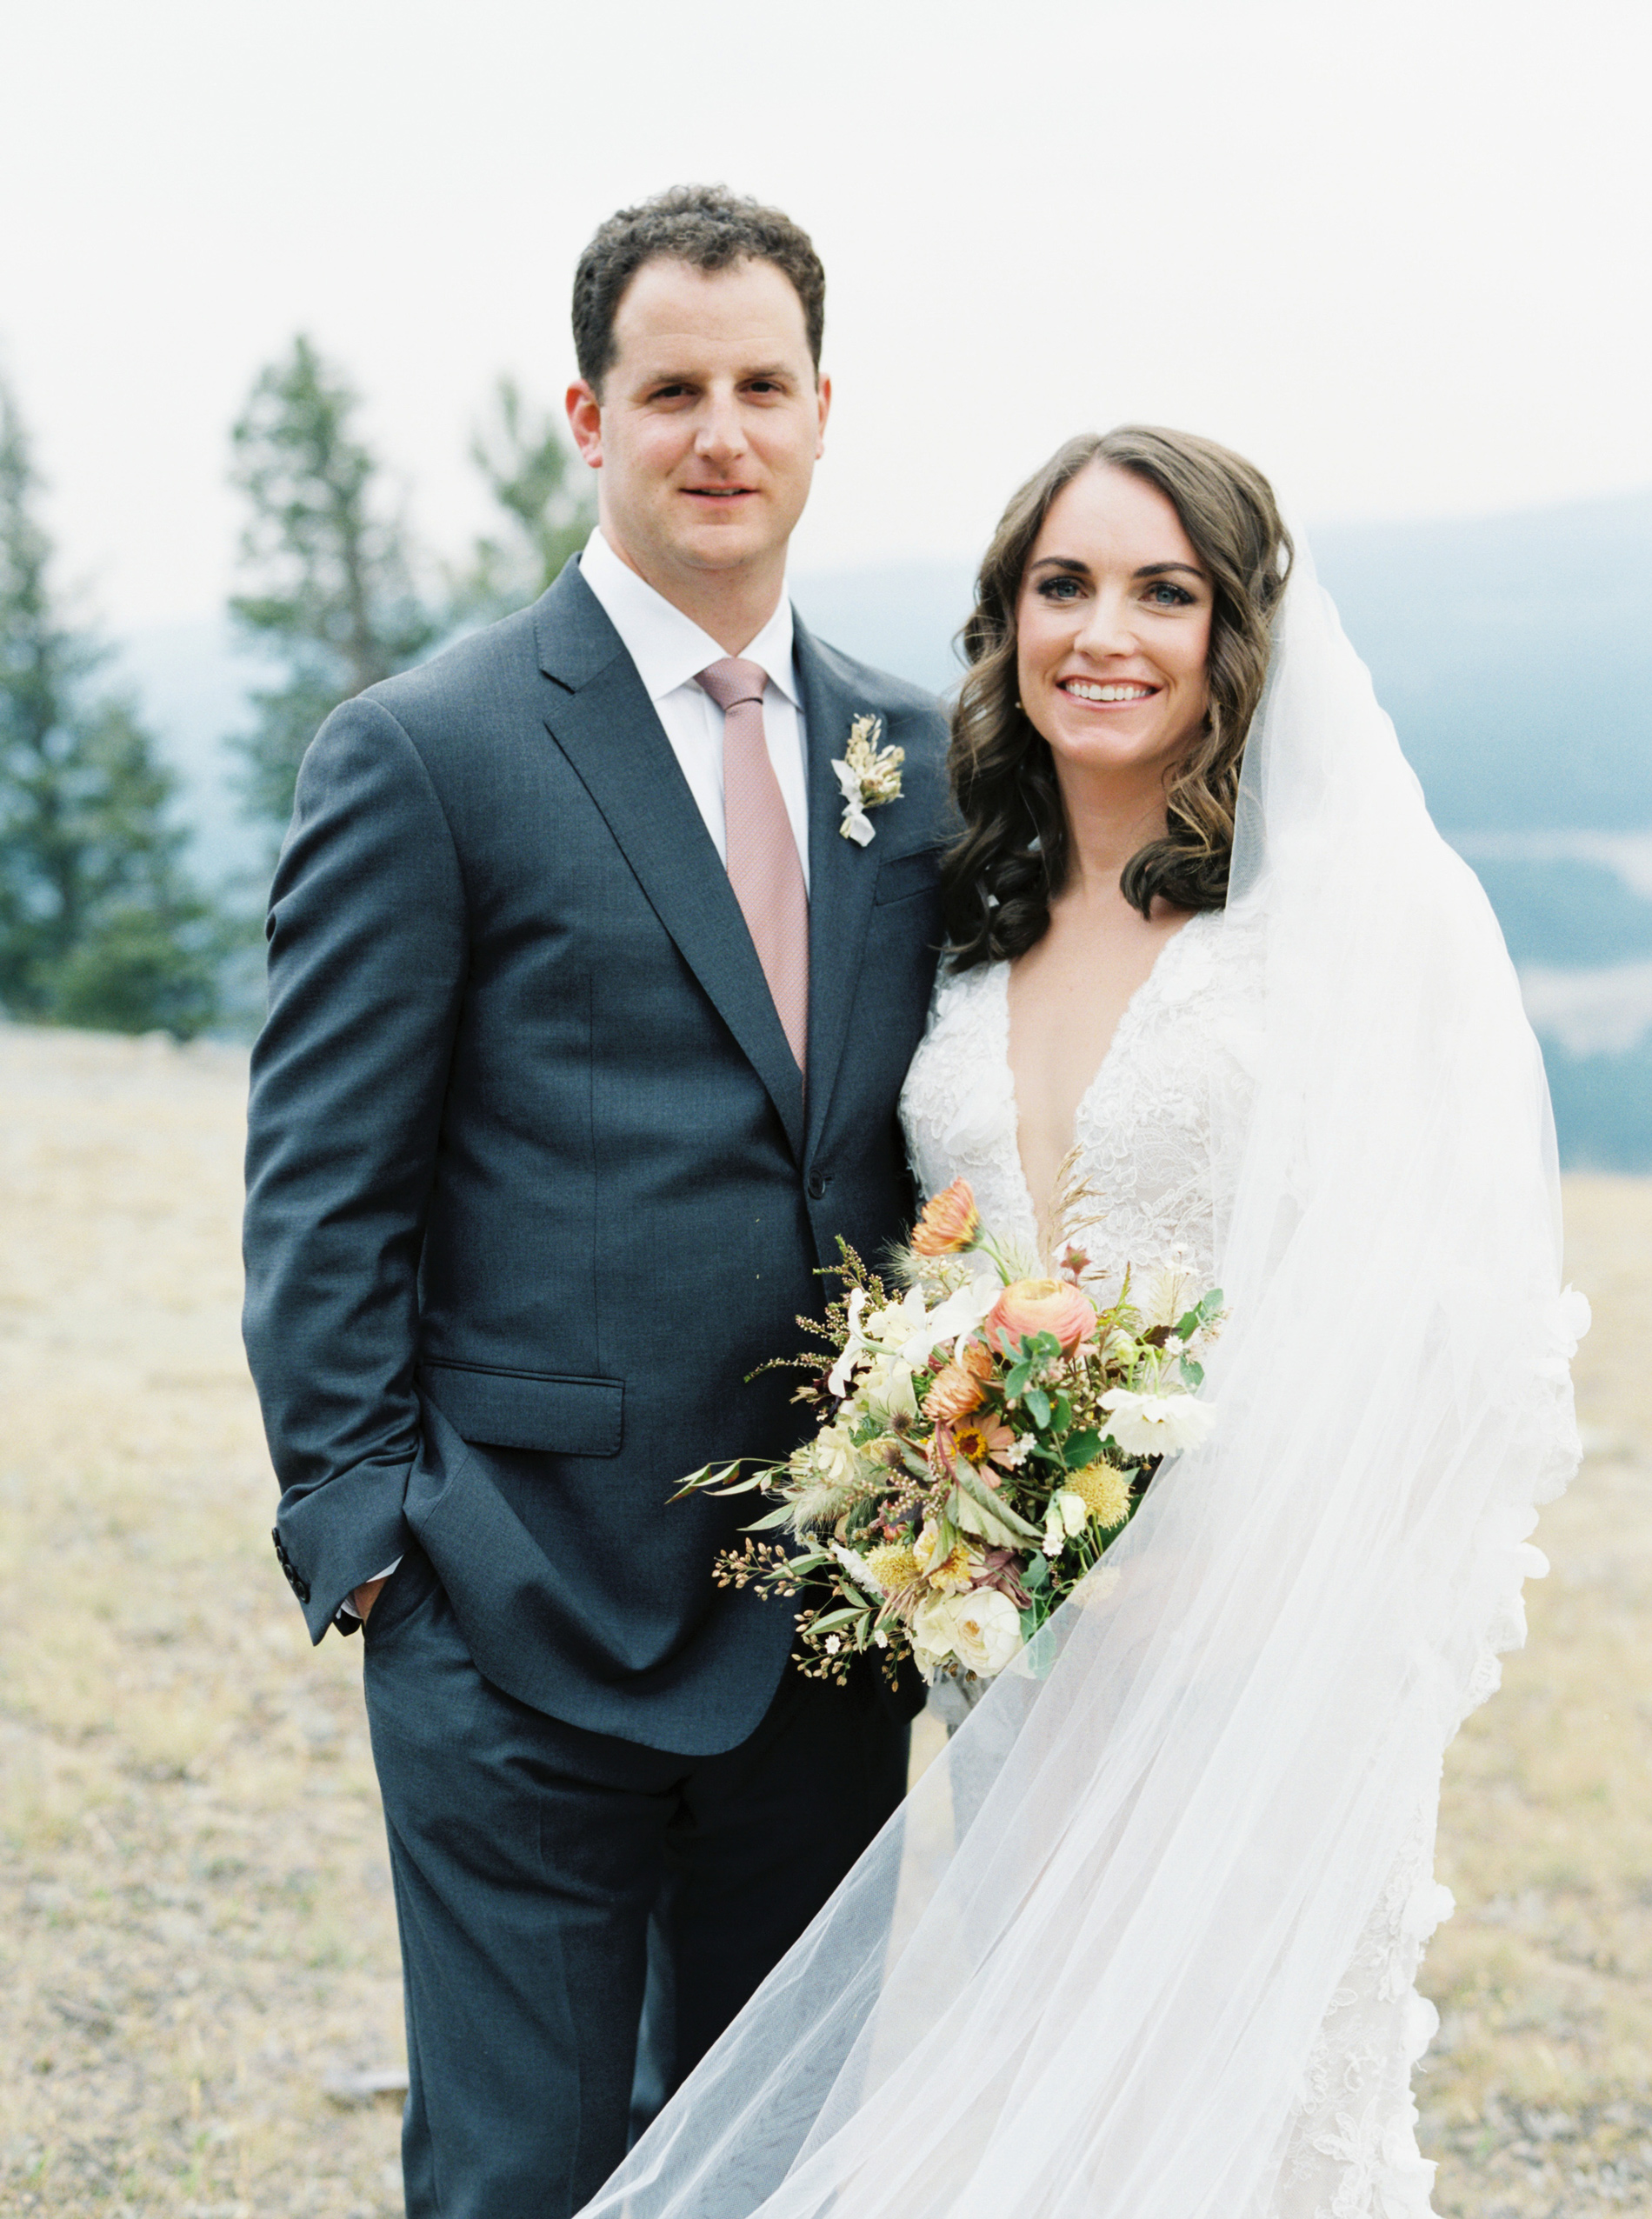 bride and groom stand outside on hillside for wedding portraits